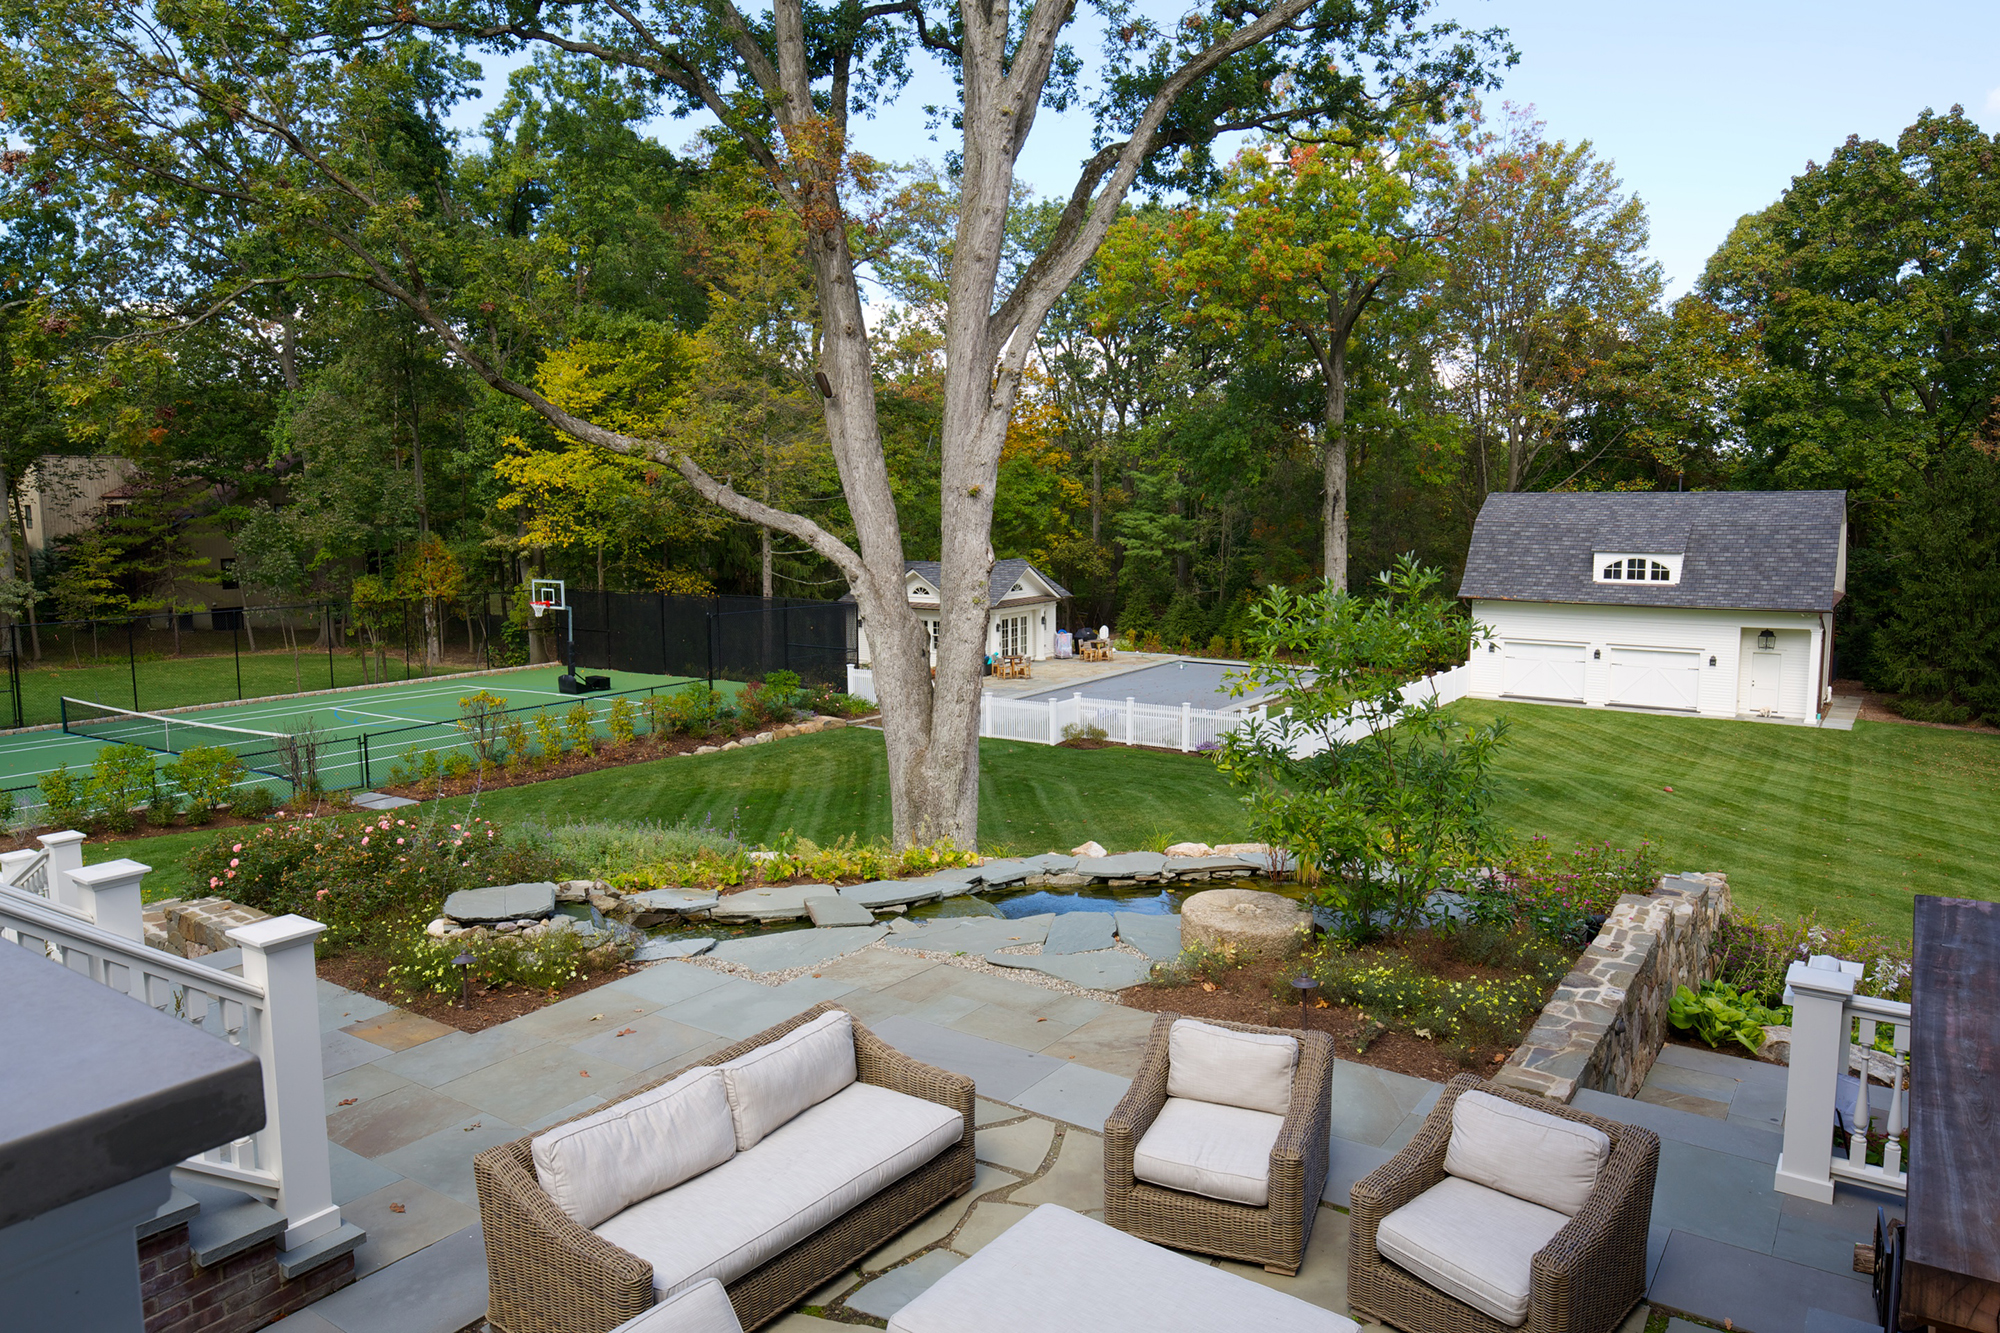 New England Elegance - A Gorgeous Outdoor Living Space